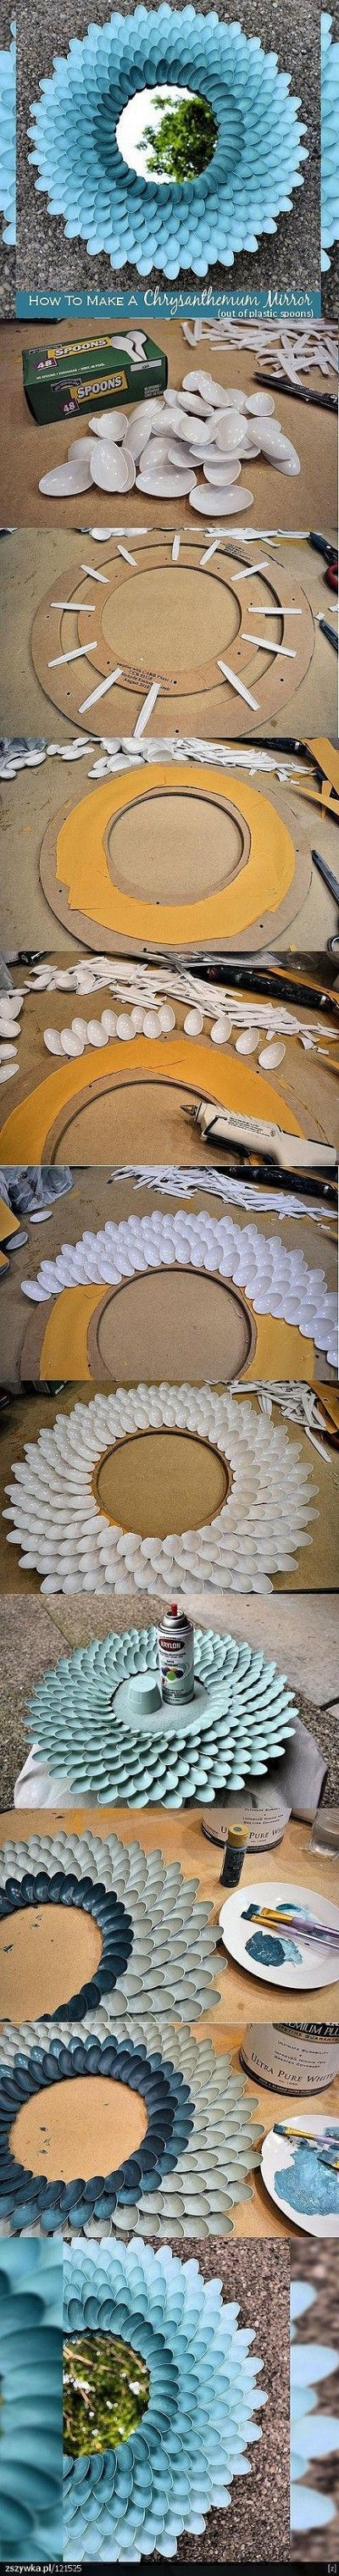 How to make chrysanthemum mirror out of plastic spoons step by step DIY tutorial picture instructions / How To Instructions